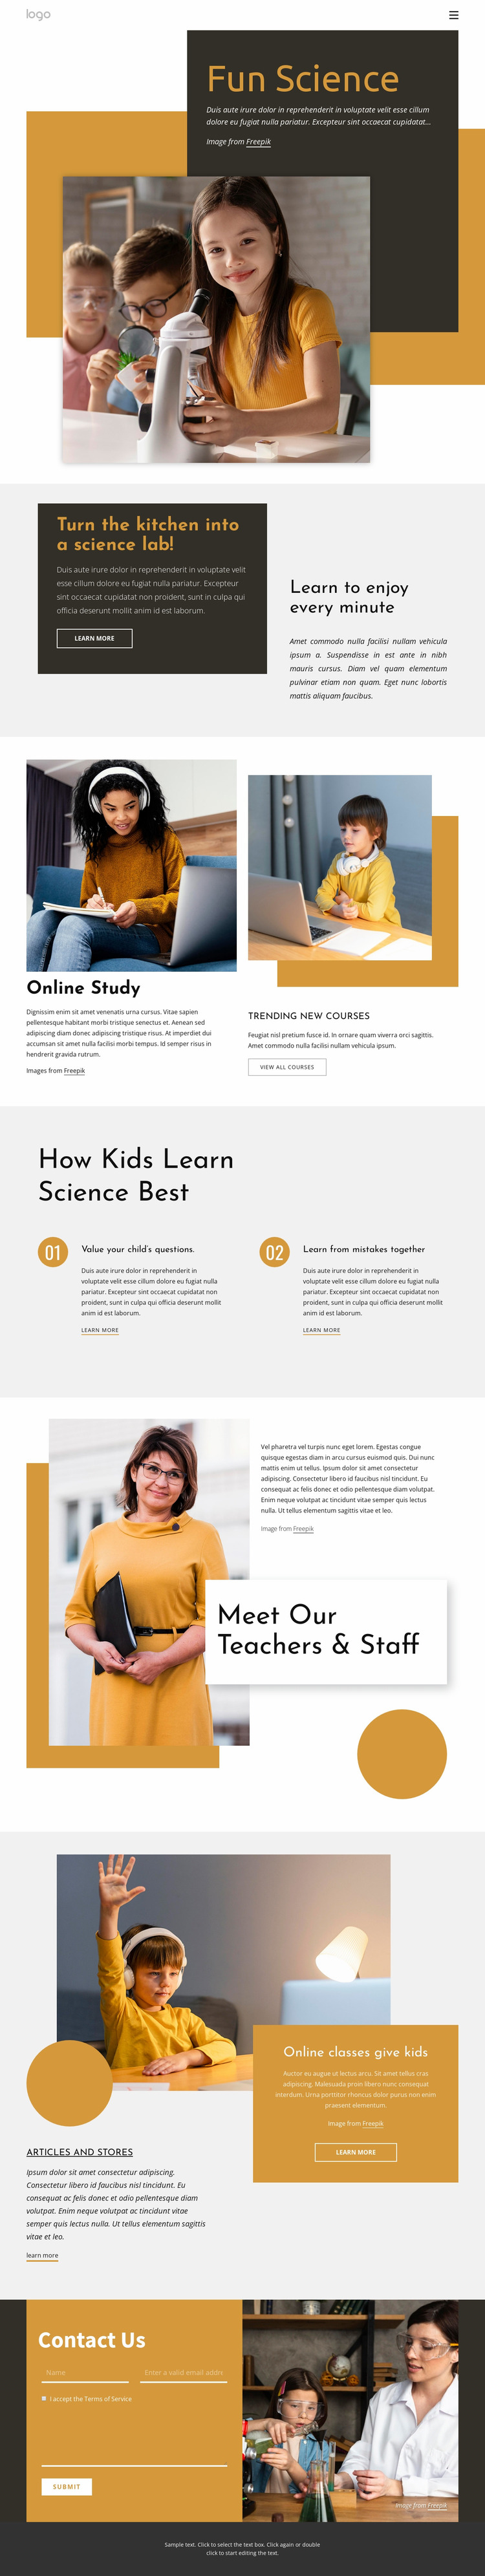 Cool science project Website Mockup